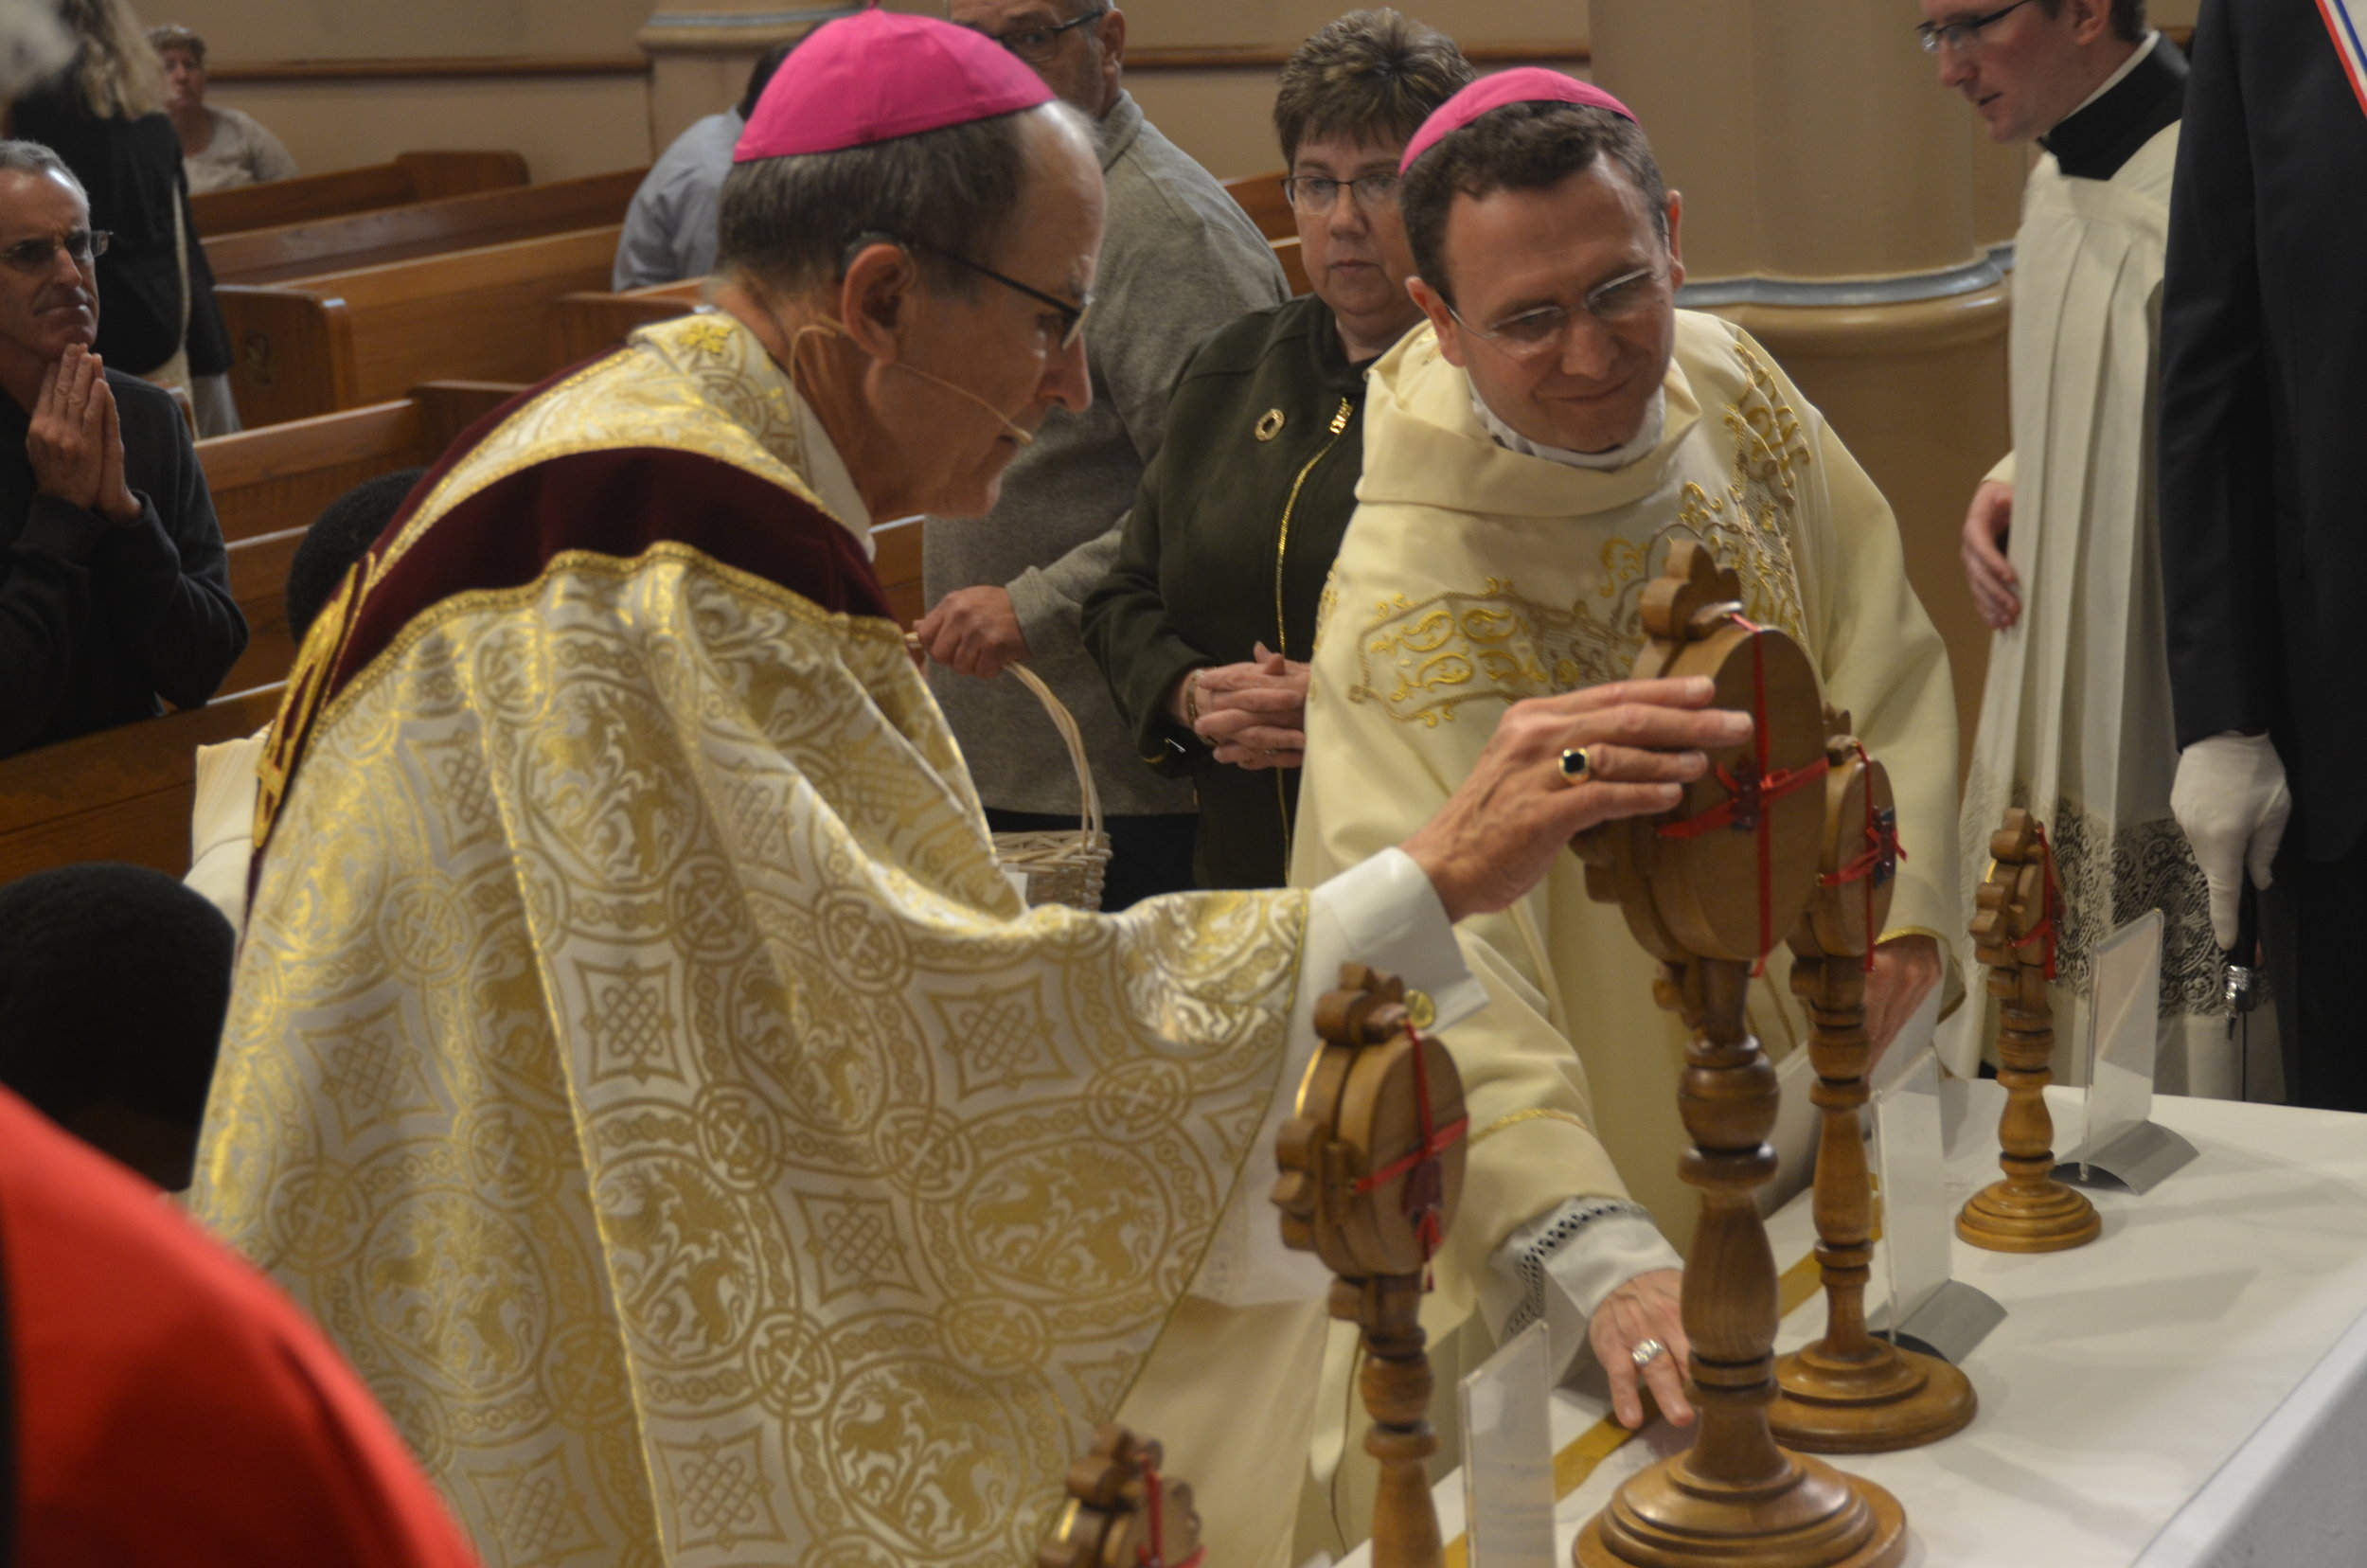 NEW ULM – A half dozen relics of Saint Pio of Pietrelcina drew faithful from throughout the Diocese of New Ulm to the Cathedral of the Holy Trinity in New Ulm on Sunday, Oct. 28 for veneration and prayer following the 10 a.m. Mass co-celebrated by Bishop LeVoir and Bishop Andrew H. Cozzens, auxiliary bishop of the Archdiocese of Saint Paul and Minneapolis.  (Click for information and photos.)